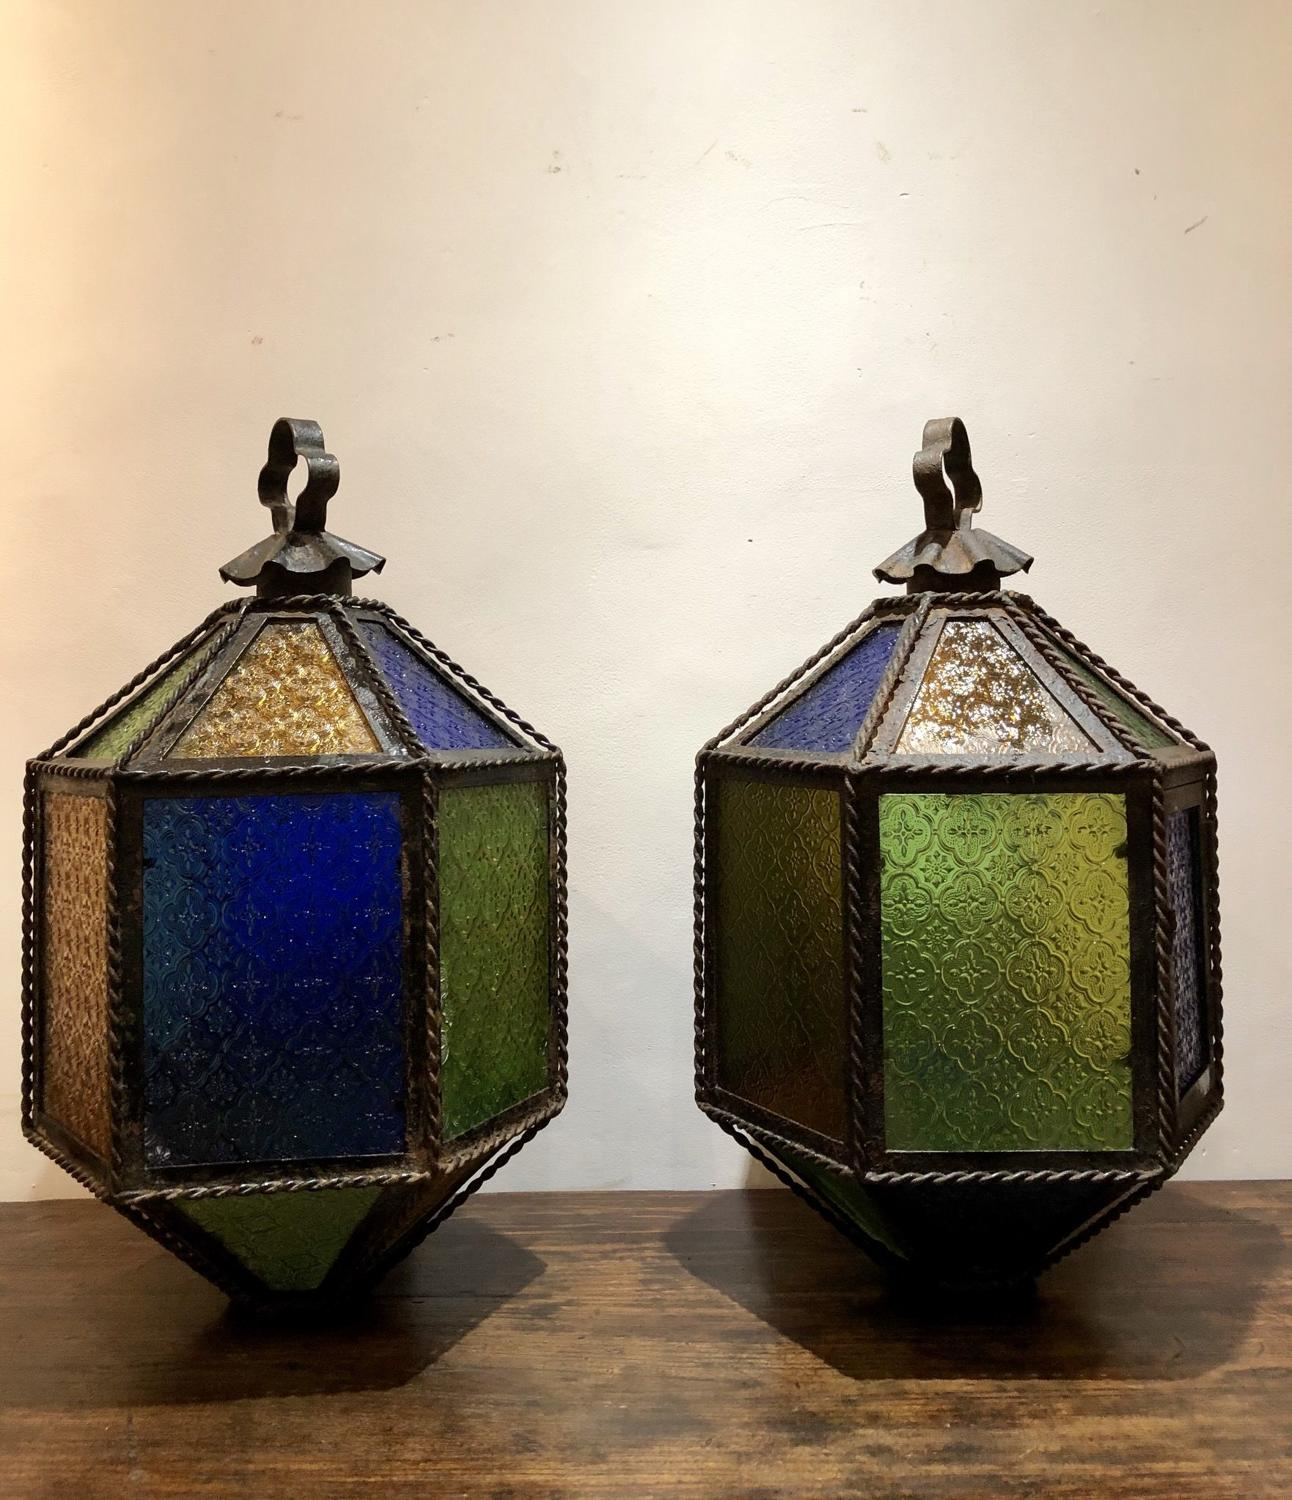 A pair of Grotto folly lanterns